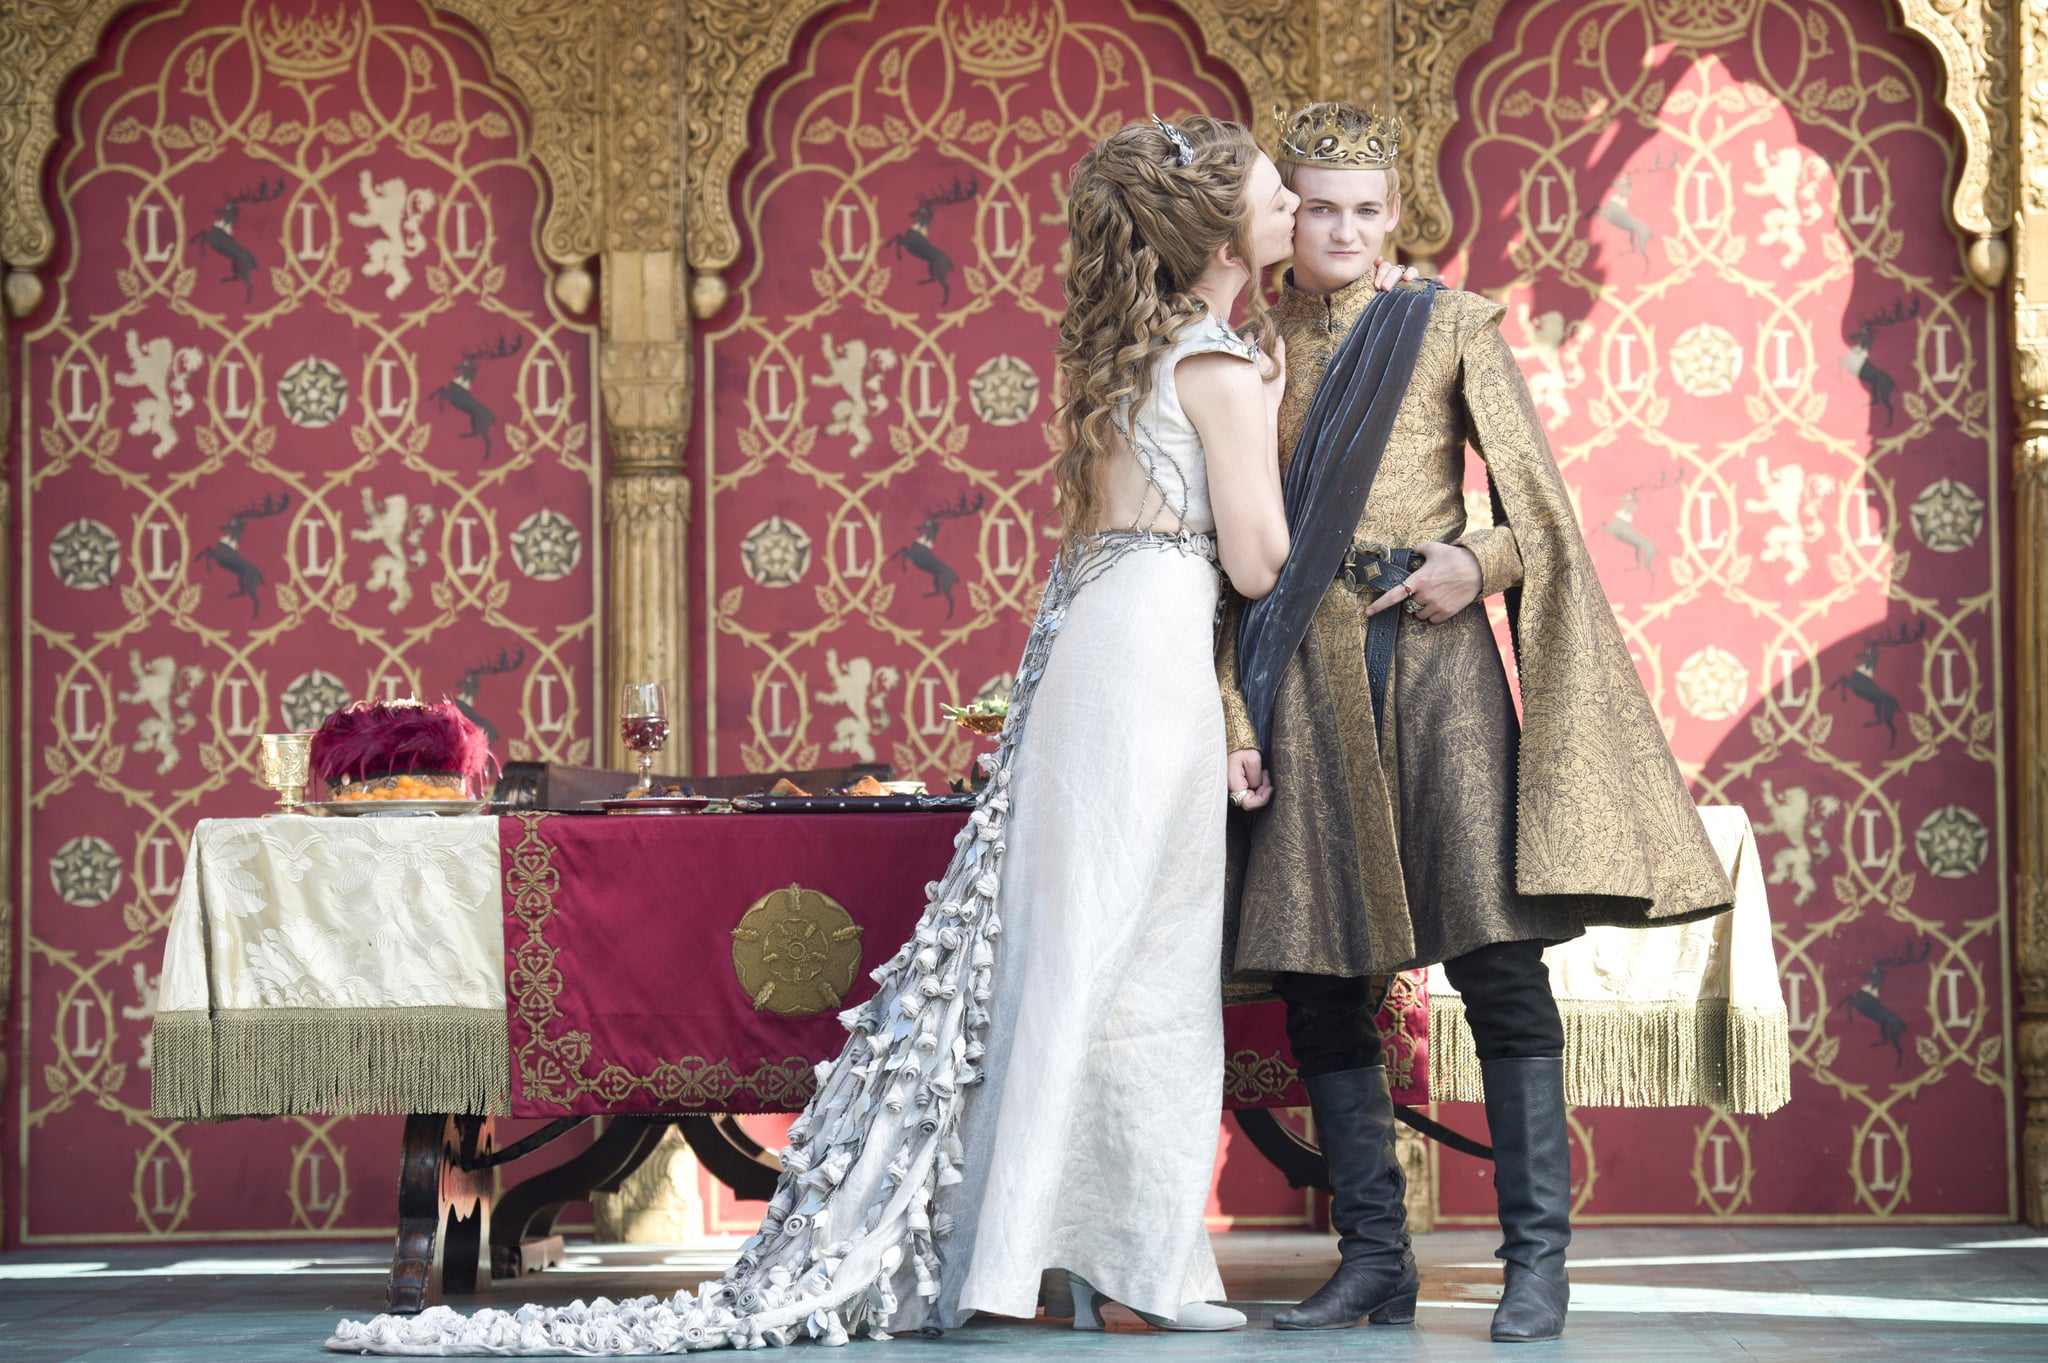 What a delightful portrait and not at all representative of what Margaery thinks of her new husband.